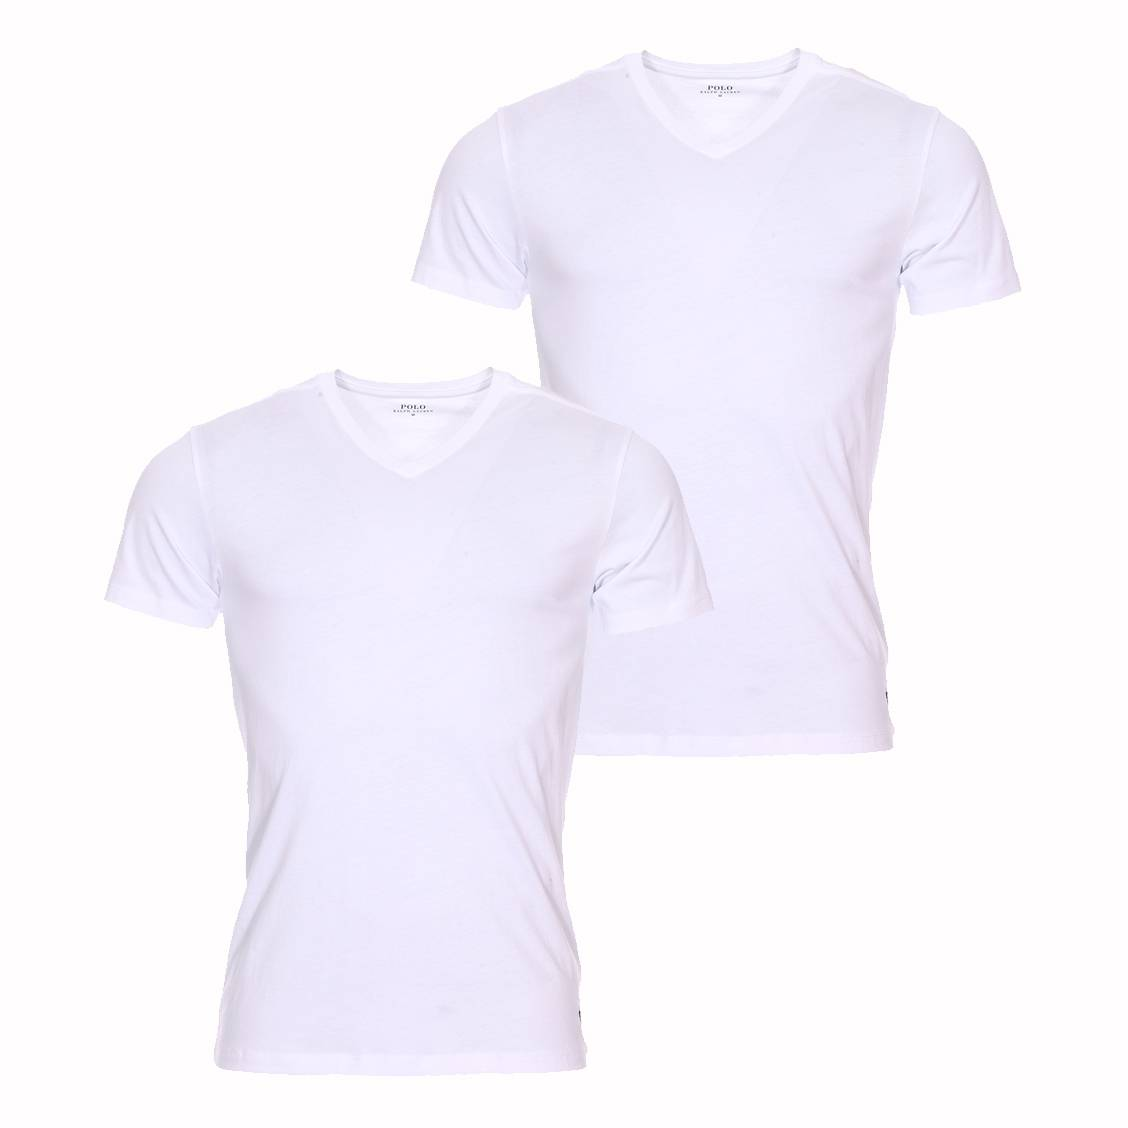 lot de 2 tee shirts col v polo ralph lauren en coton blanc. Black Bedroom Furniture Sets. Home Design Ideas